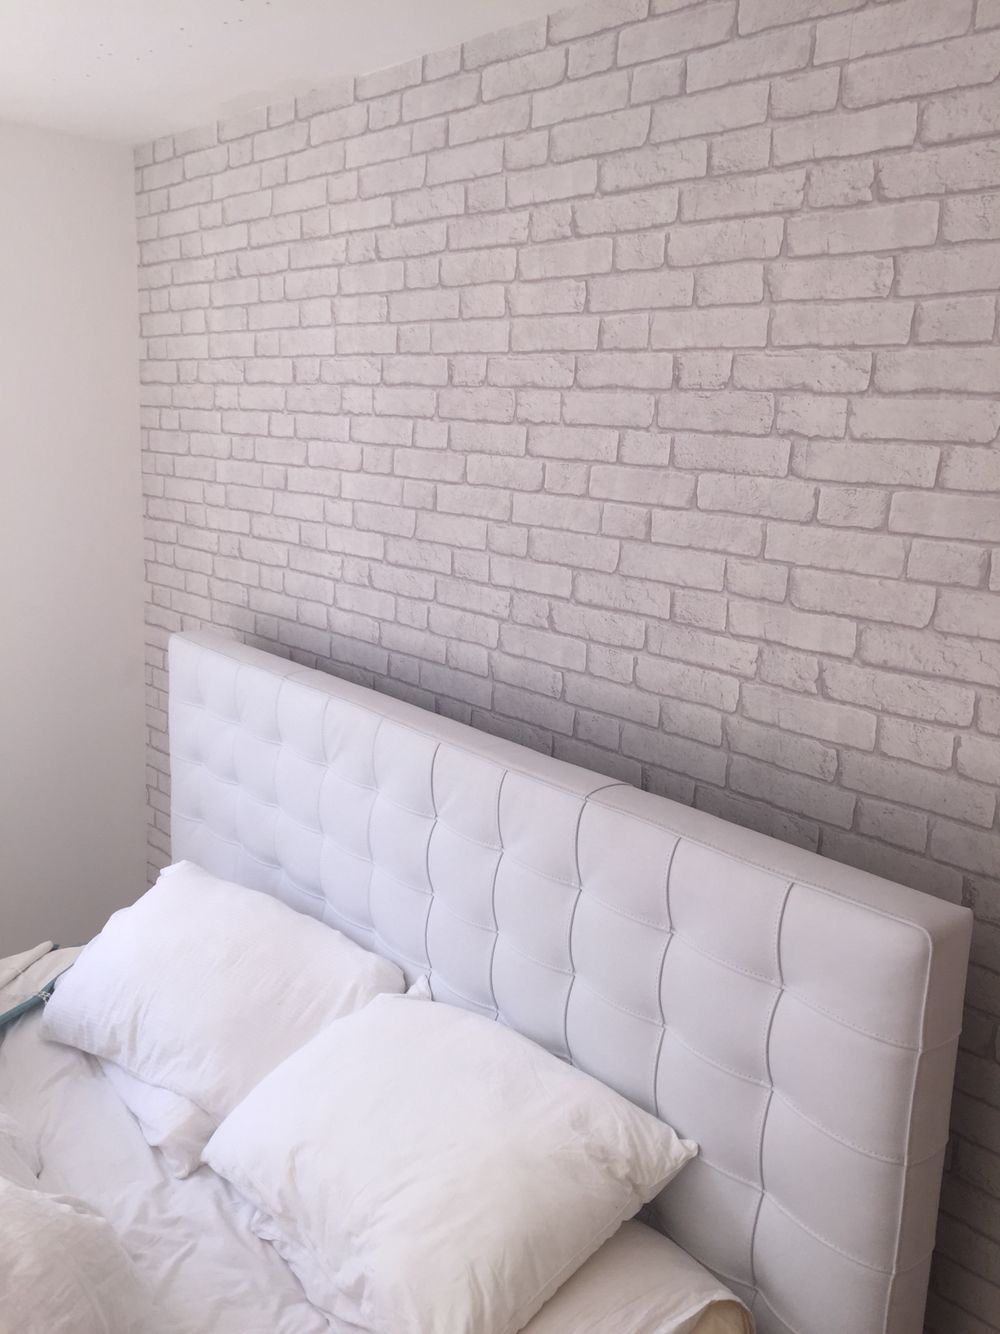 21 Modern Interior Design Ideas Emphasizing White Brick Walls Tags Accent Wall